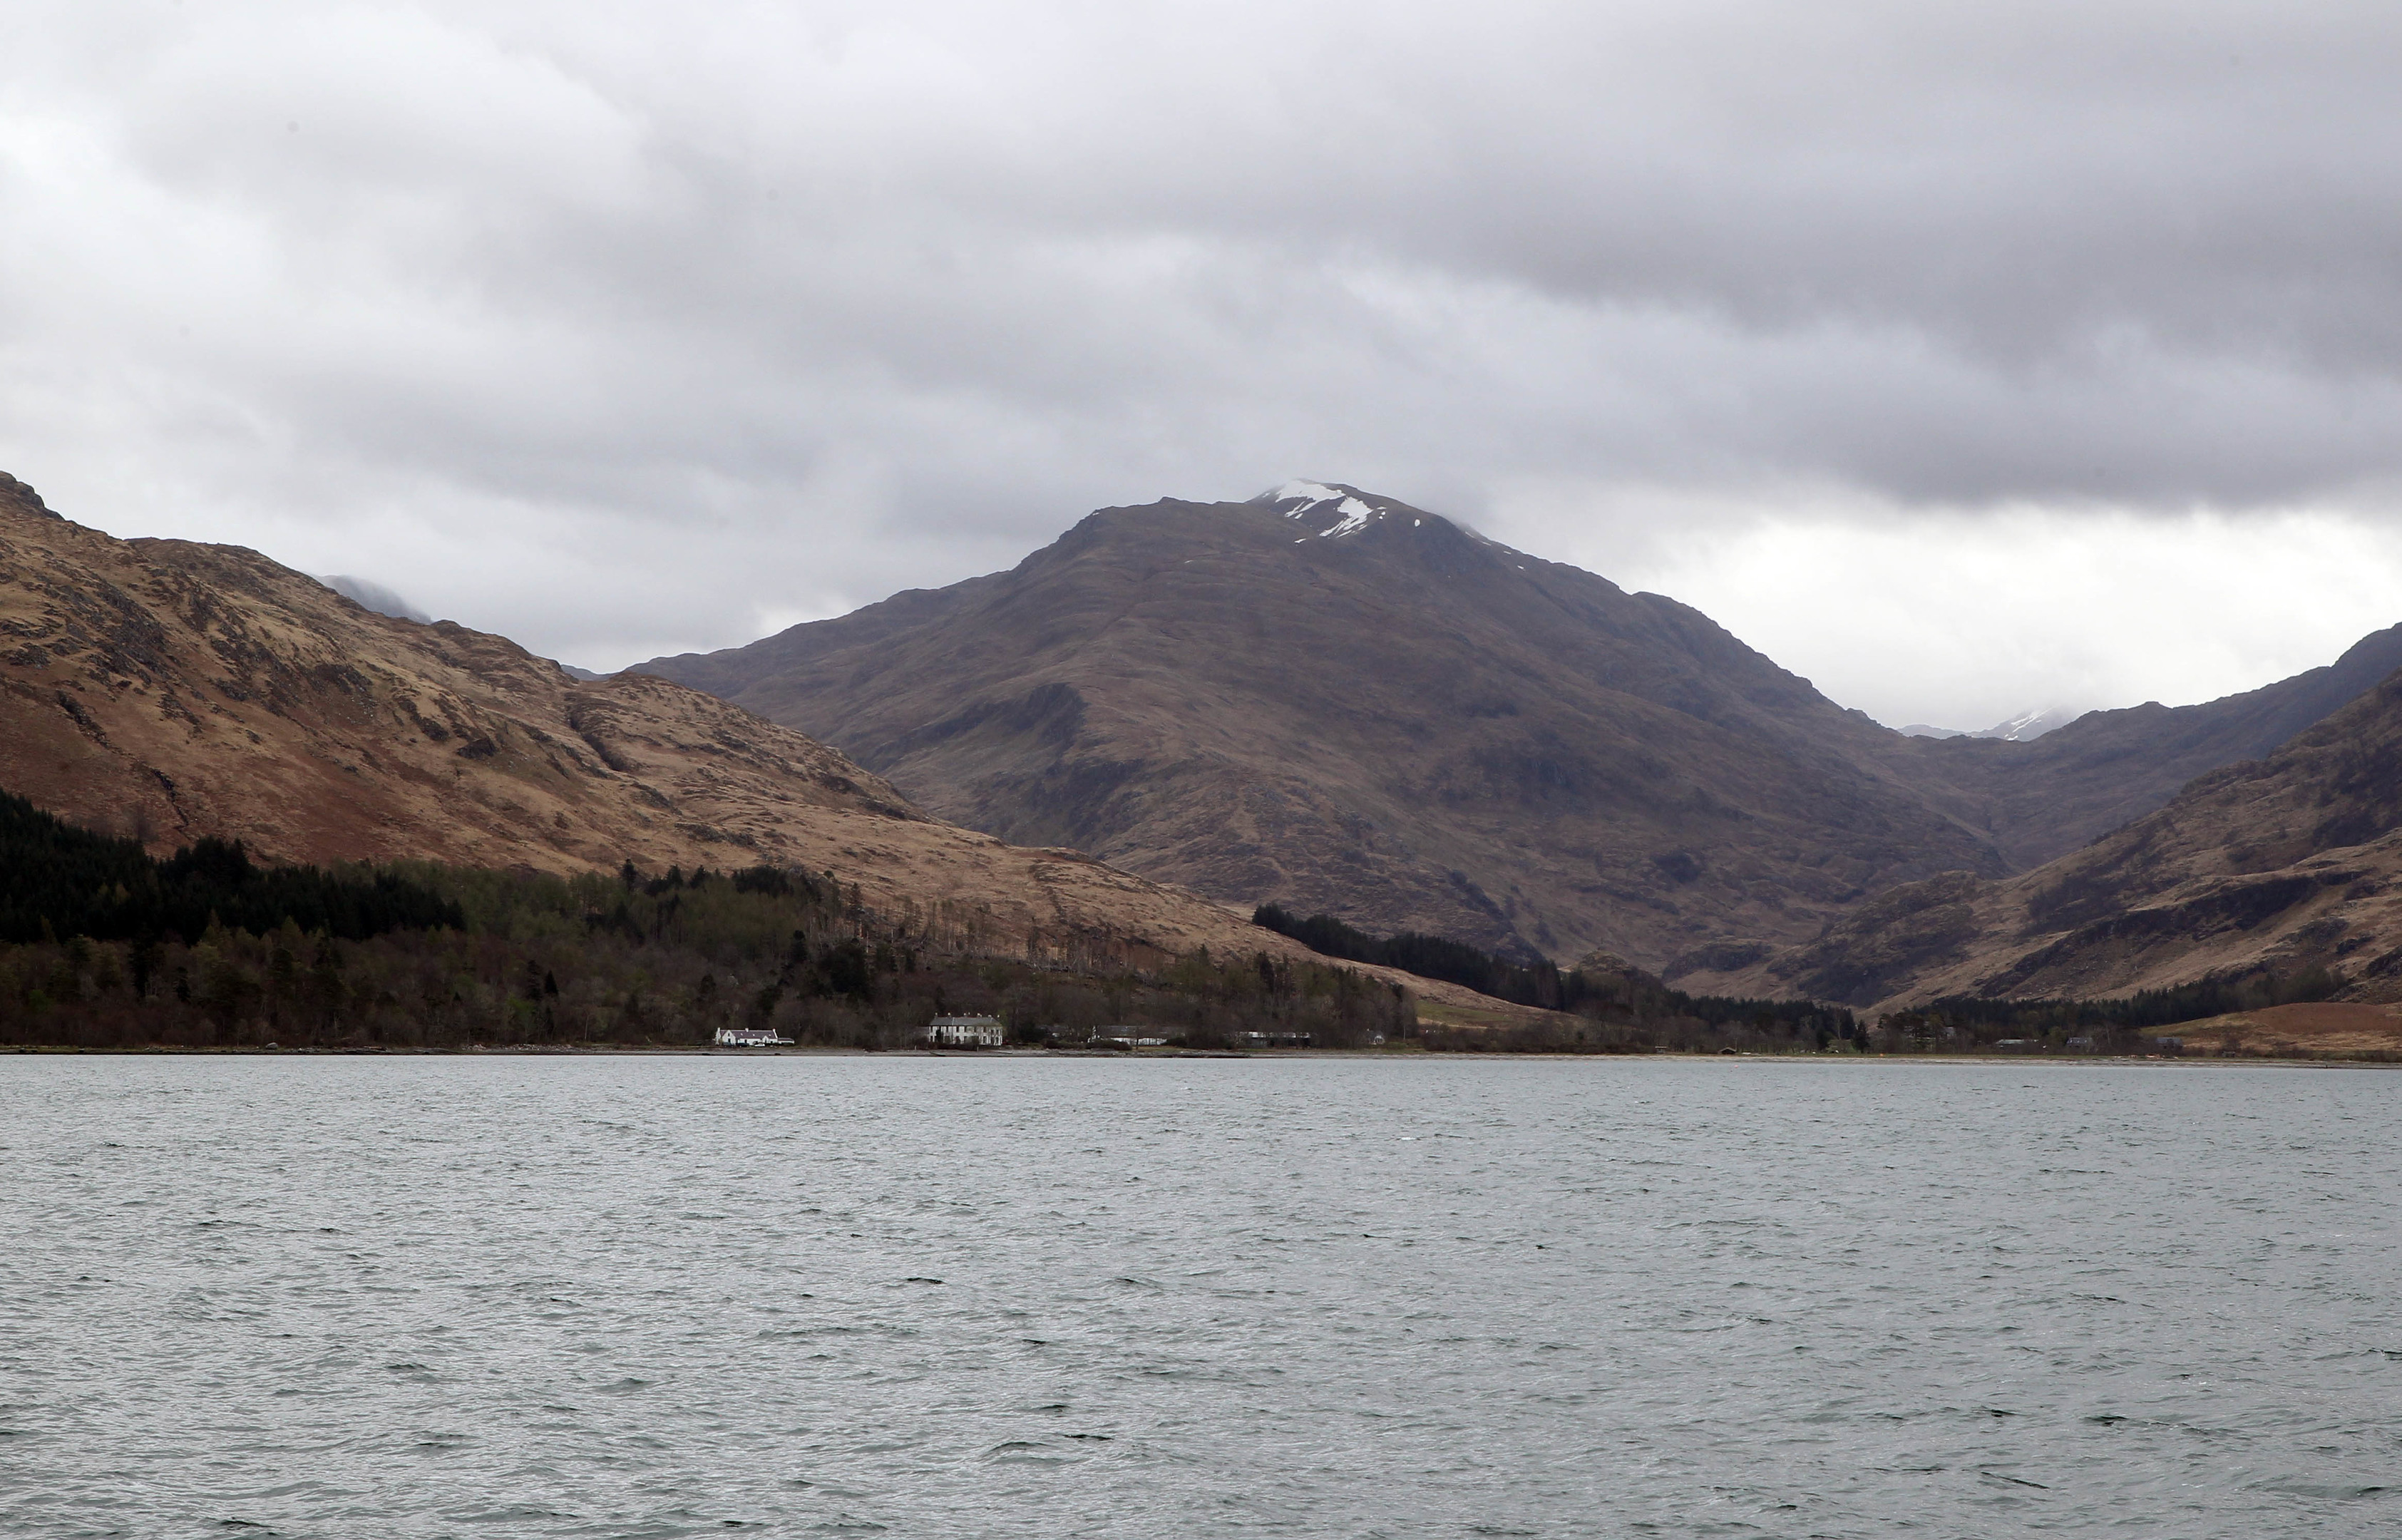 A general view of the Knoydart peninsula. Photo: Chris Austin.